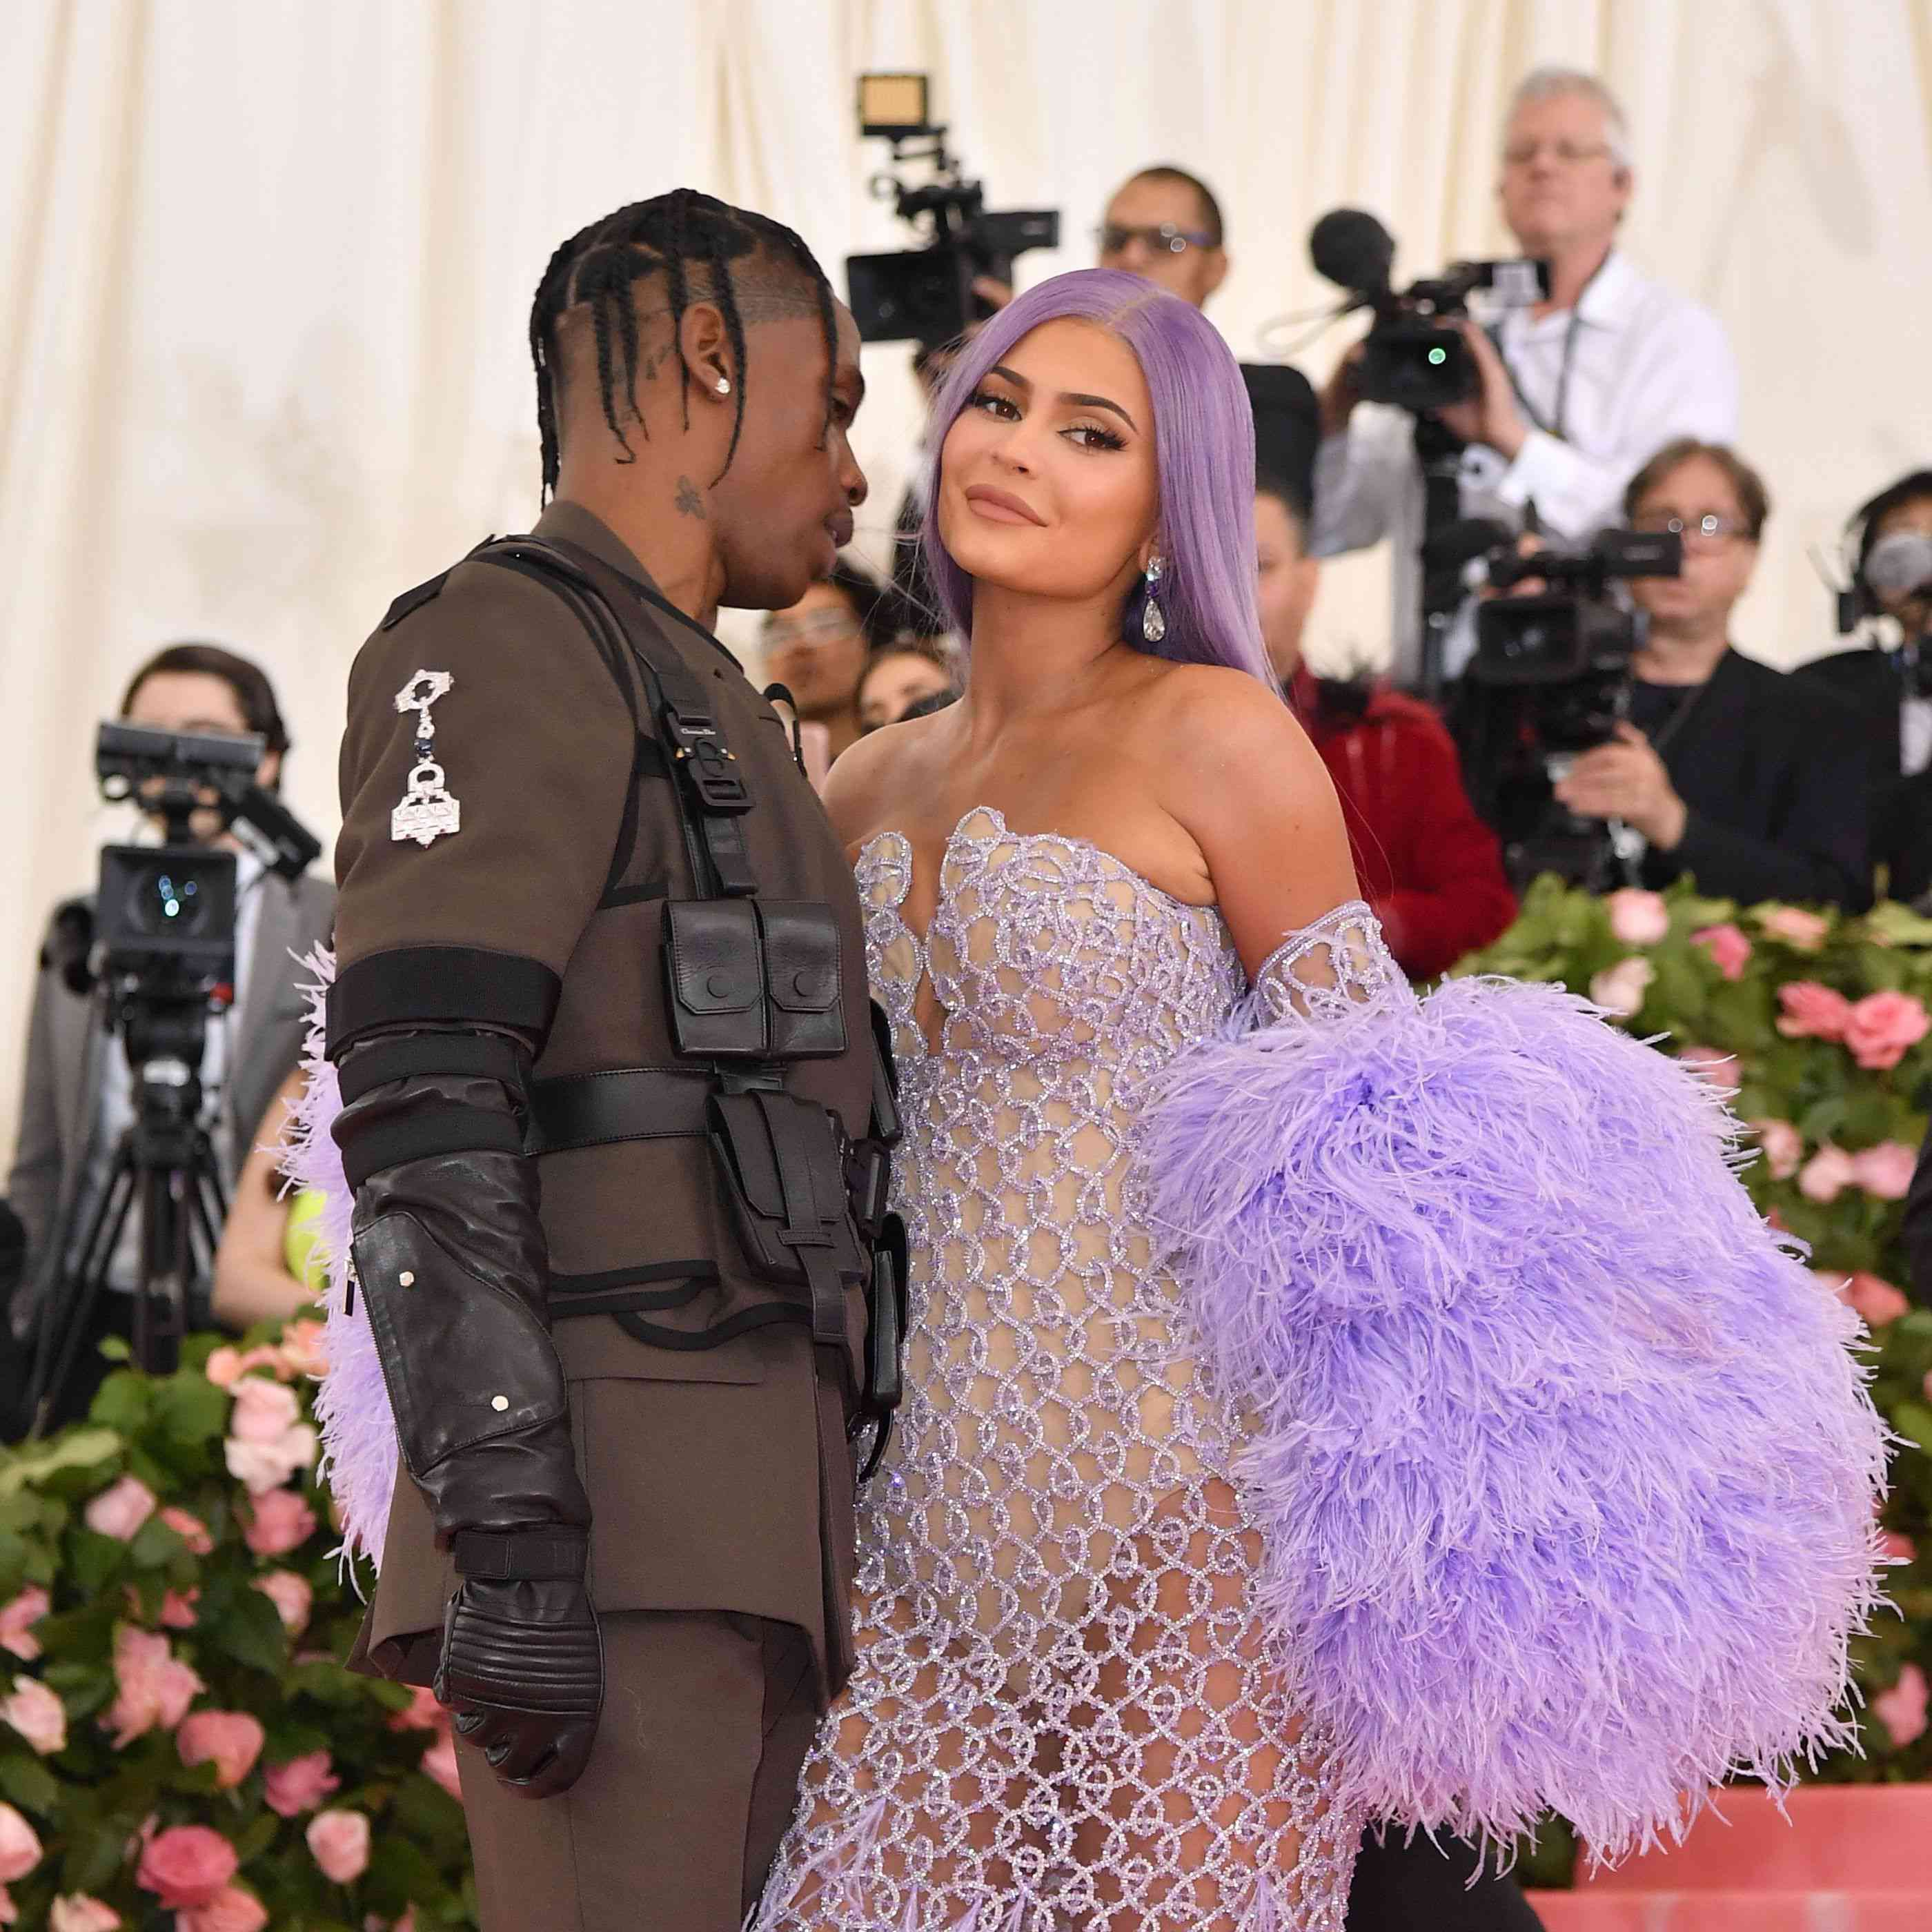 46f1c4c259 Kylie Jenner Sparks Engagement Rumors After Boarding a Plane With a ...